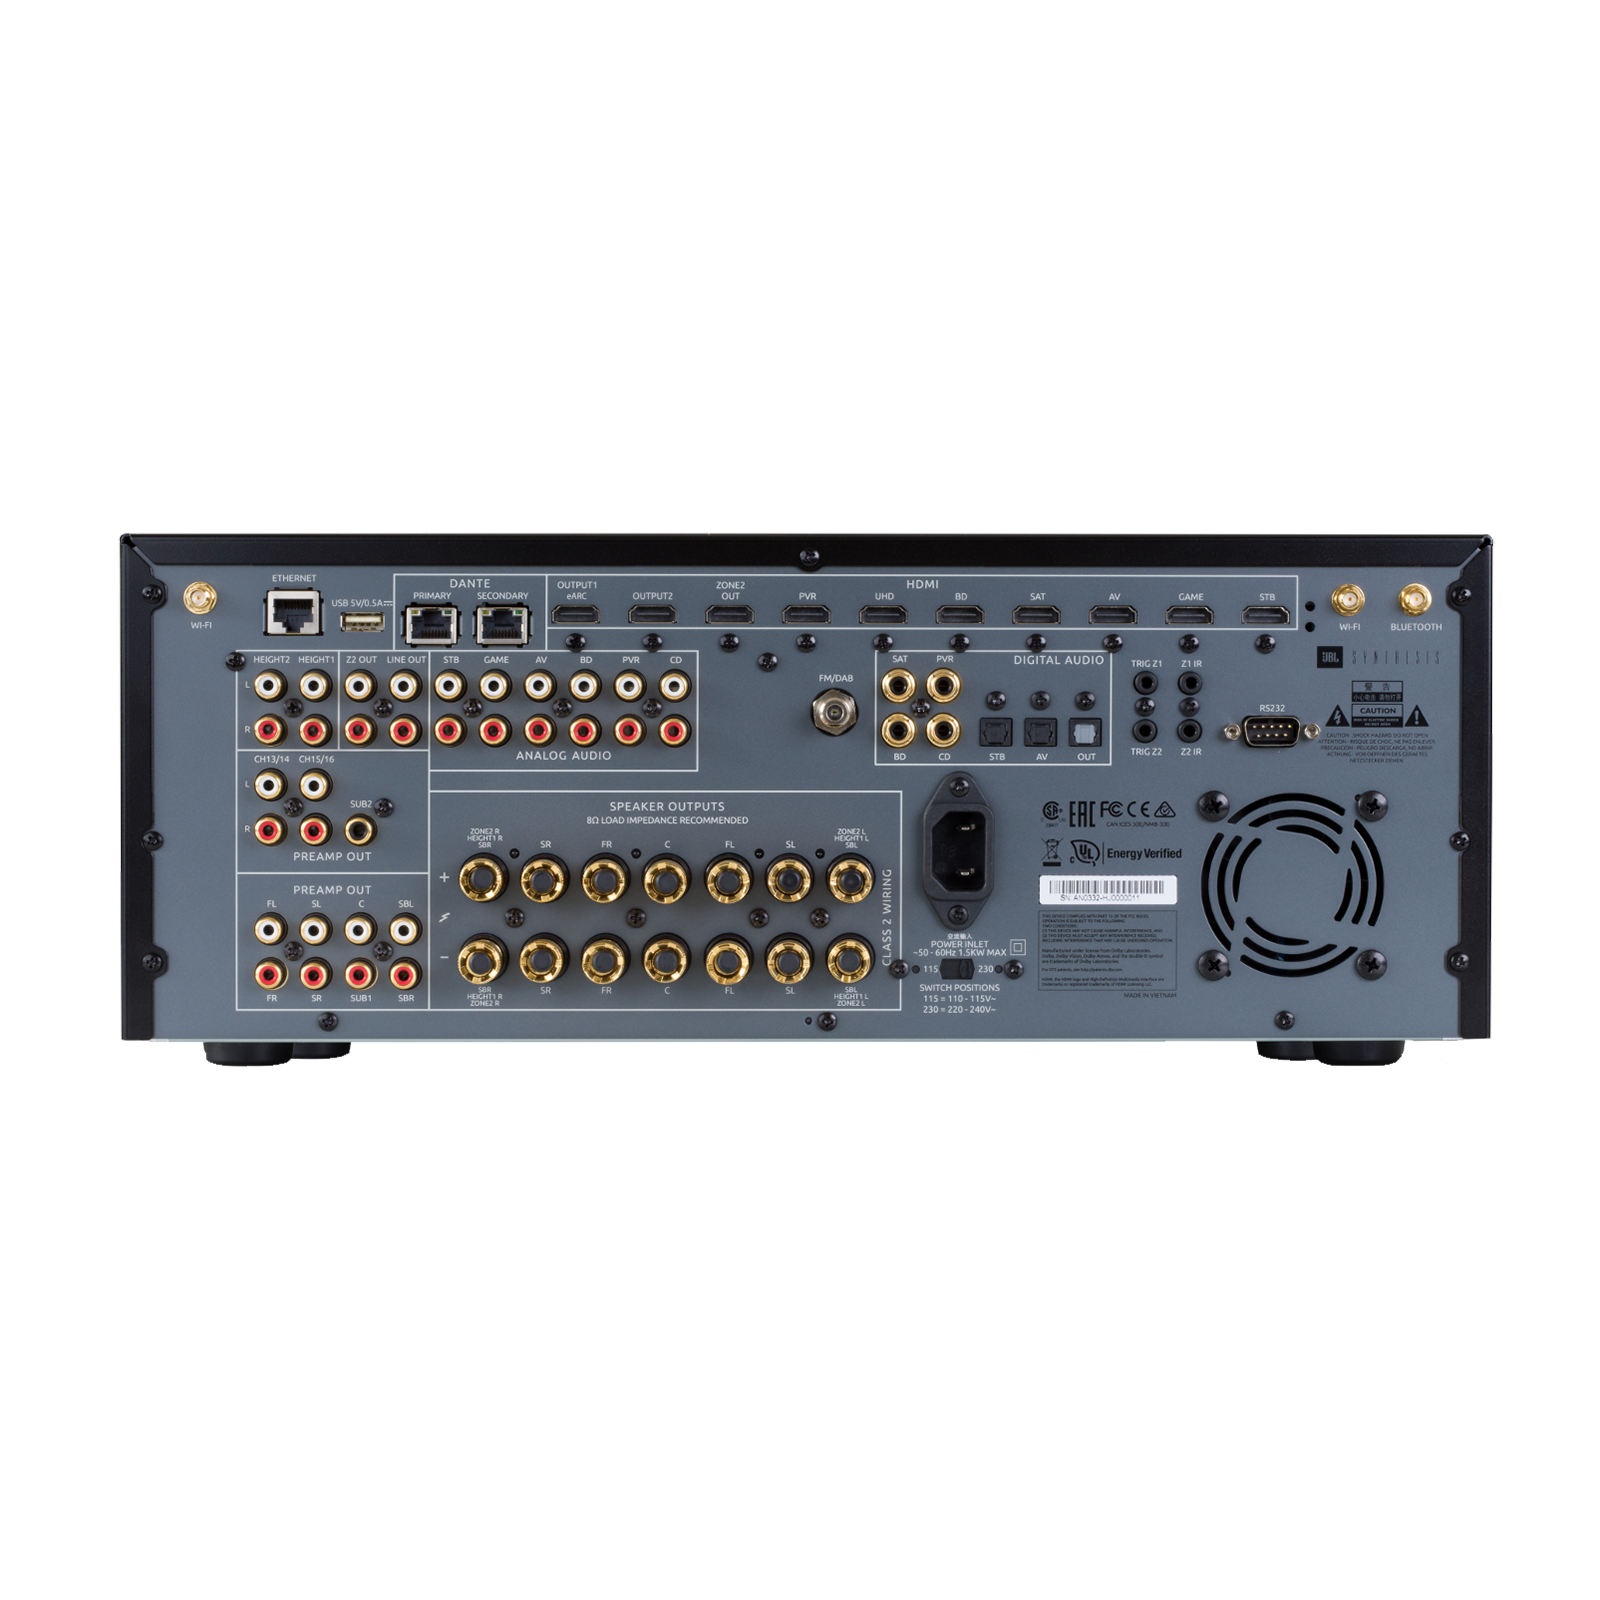 SDR-35 - Black - Class G Immersive Surround Sound AVR w/16 channels of processing - Back